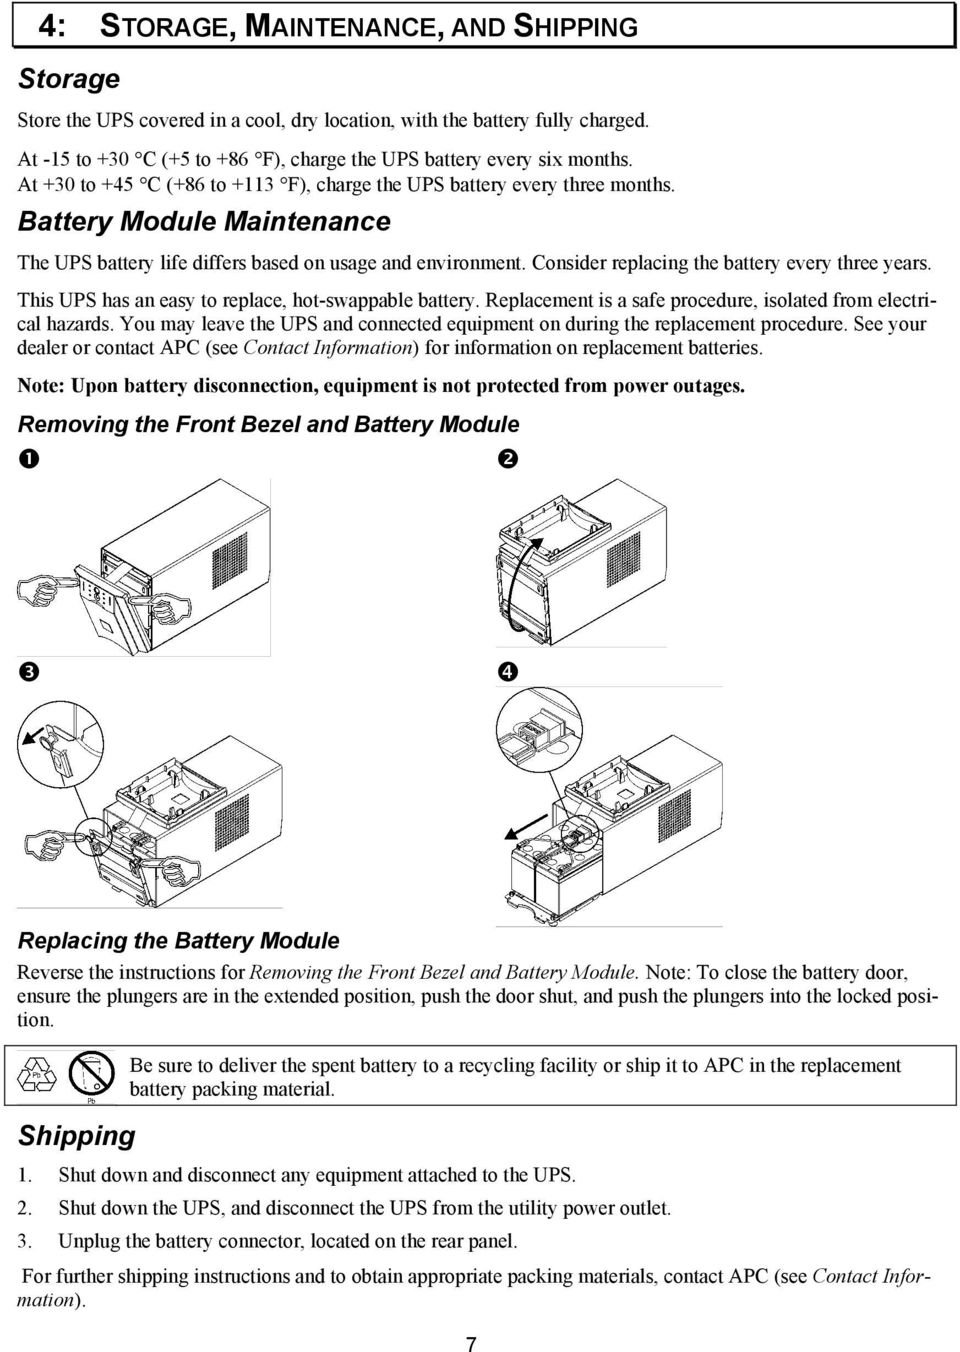 User Manual English Apc Smart Ups 500 Va 100 Vac 750 120 Kvm Wiring Diagram Consider Replacing The Battery Every Three Years This Has An Easy To Replace